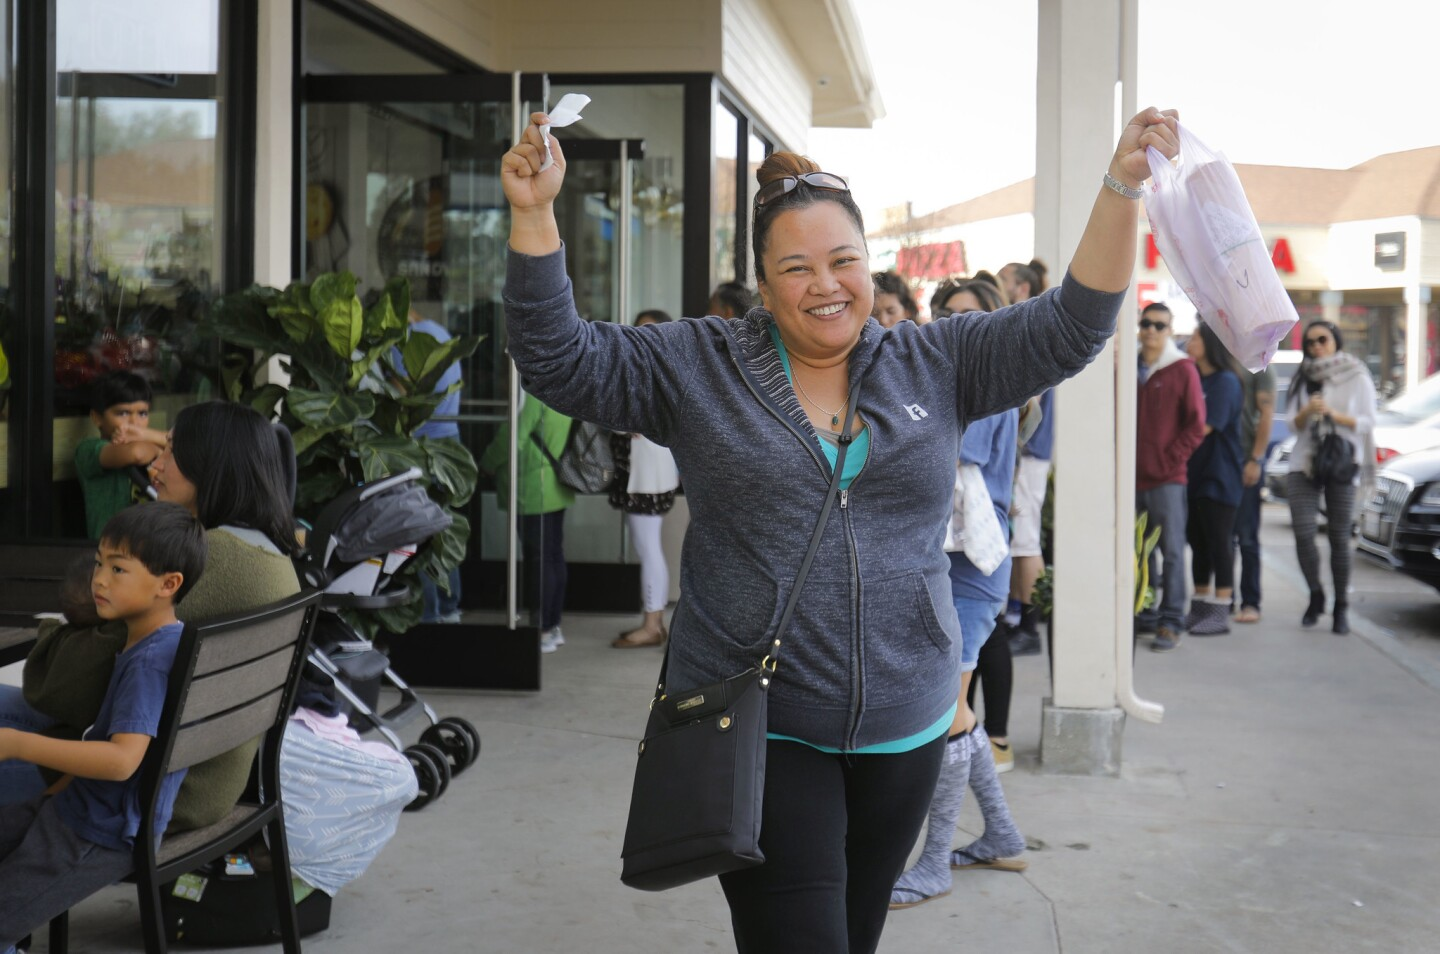 Joy Alcalen of Eastlake in Chula Vista is all smiles as she leaves K Sandwiches in Kearny Mesa with her order after waiting more than two hours during a visit on the second day of the grand re-opening.